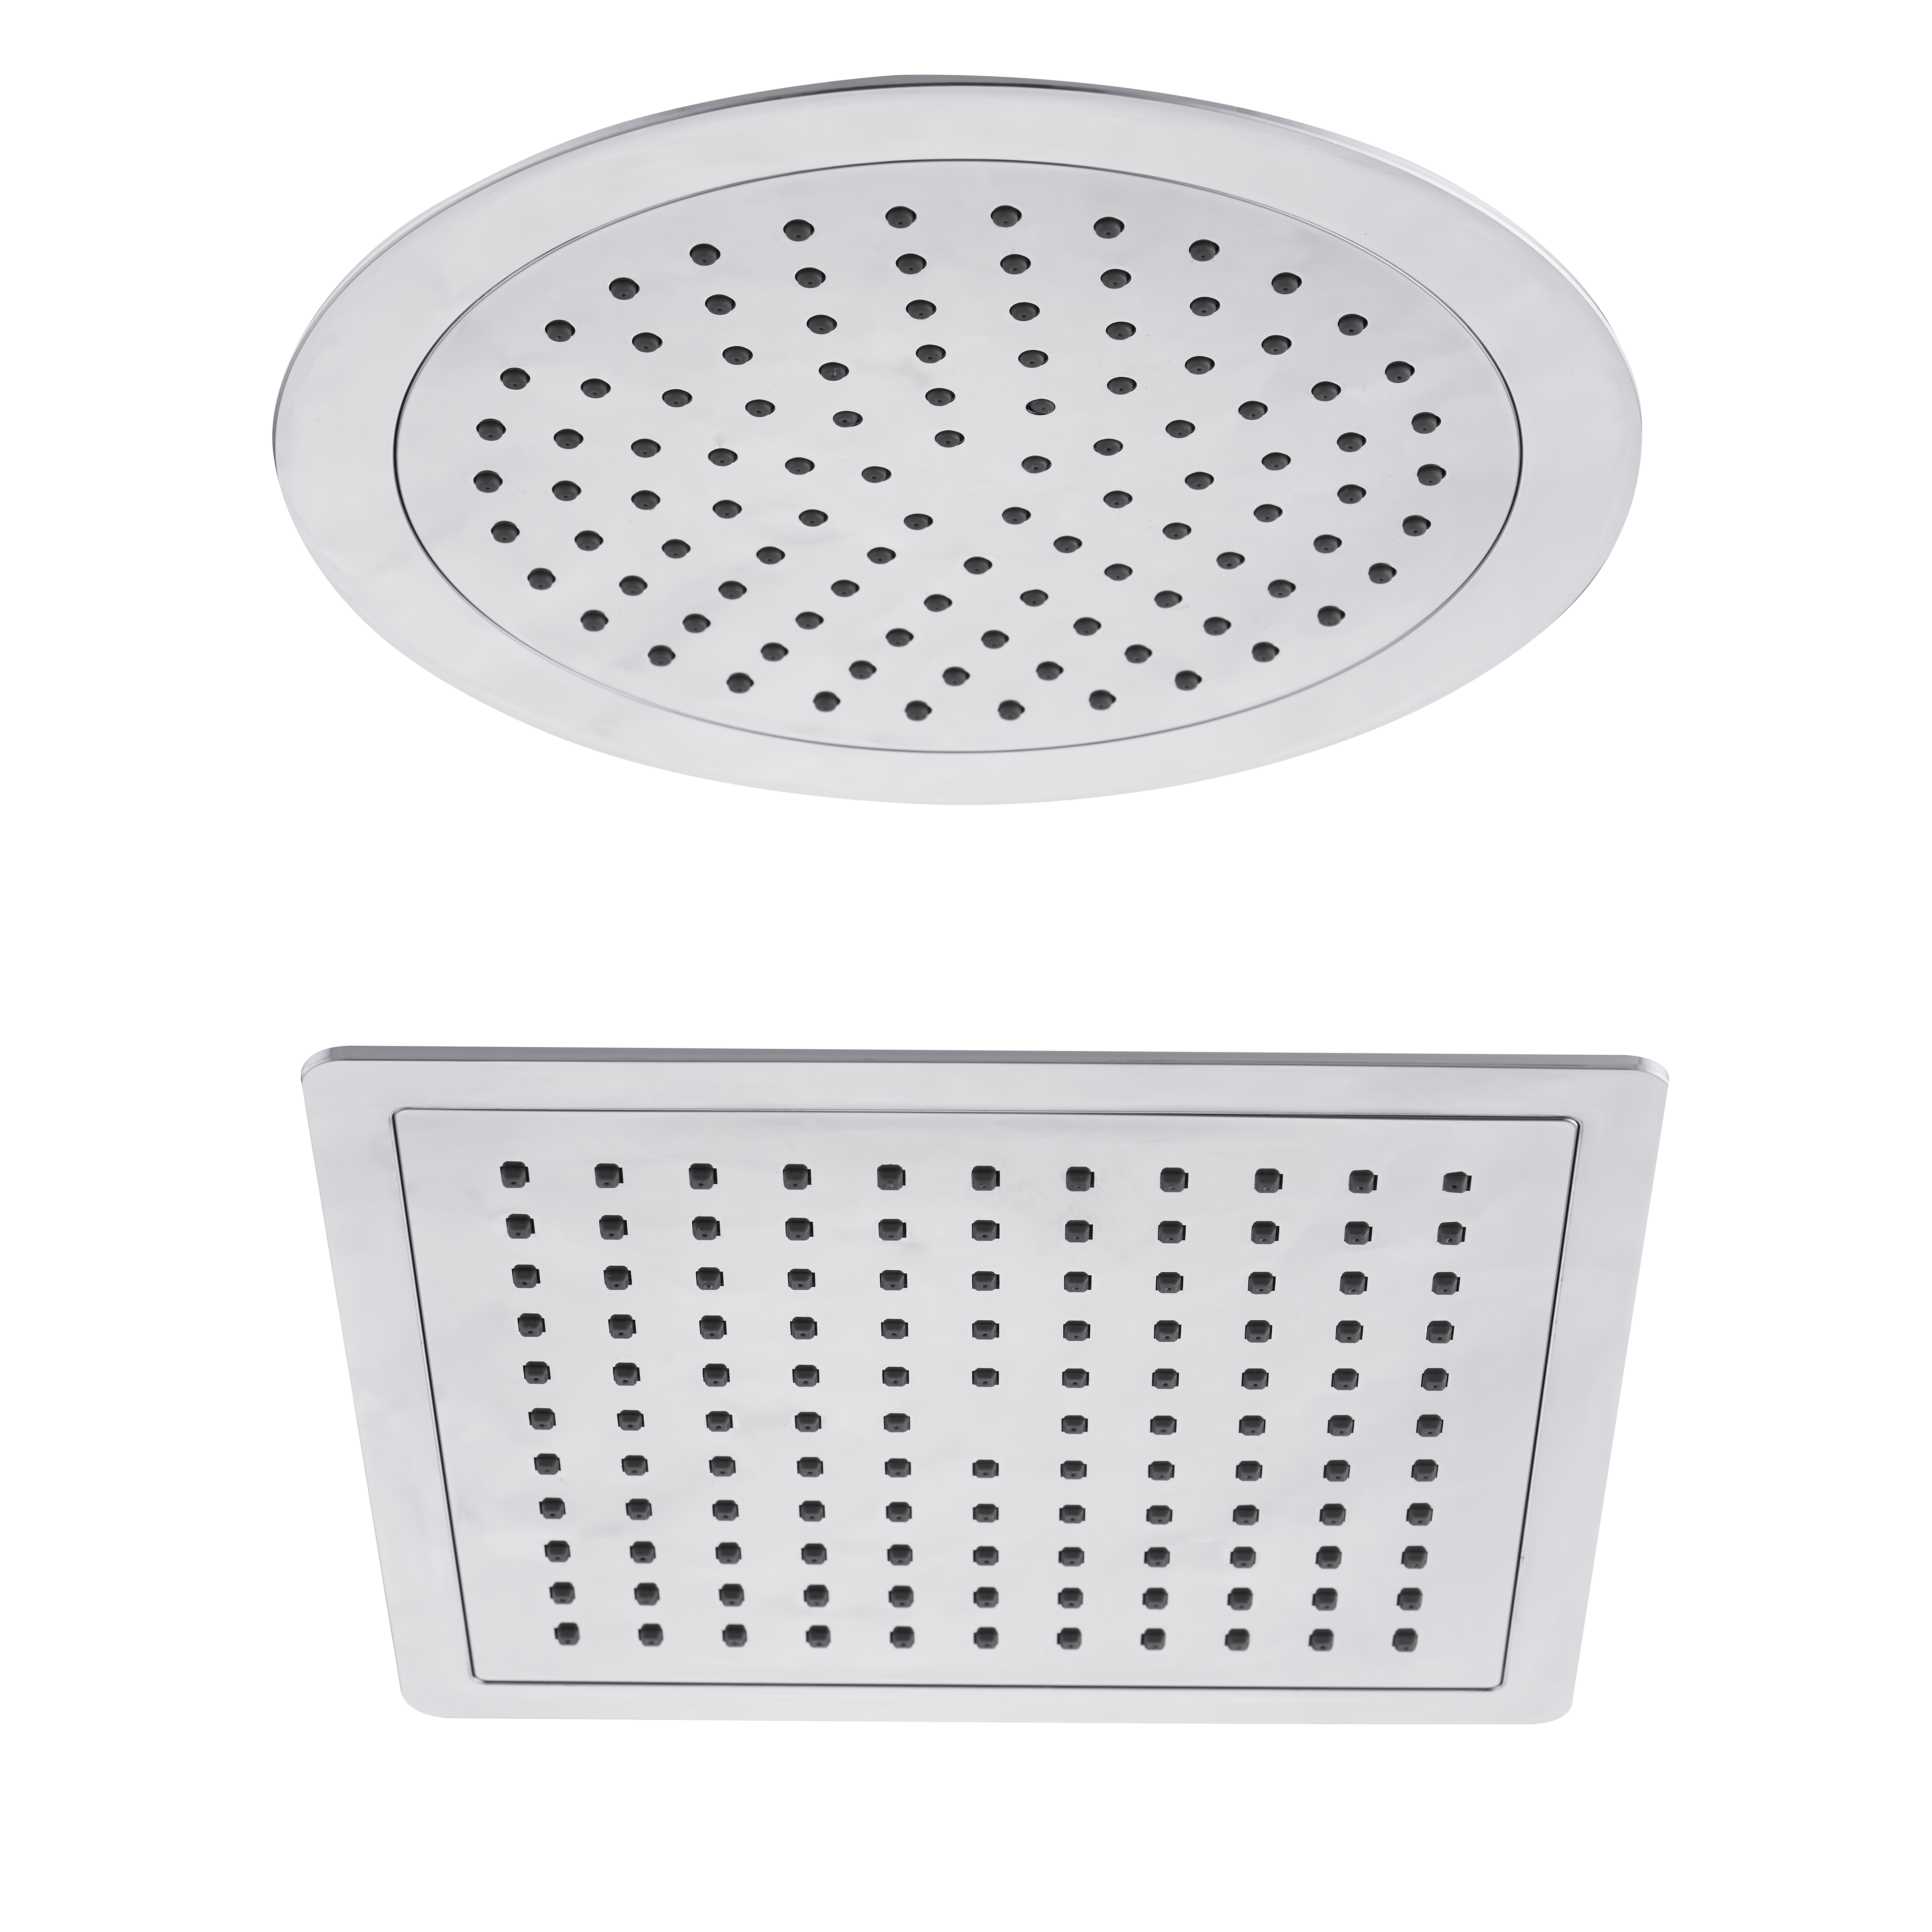 Details About Chrome Slim Round Square 200mm Overhead Rain Shower Head Swivel Joint 1 2 Bsp